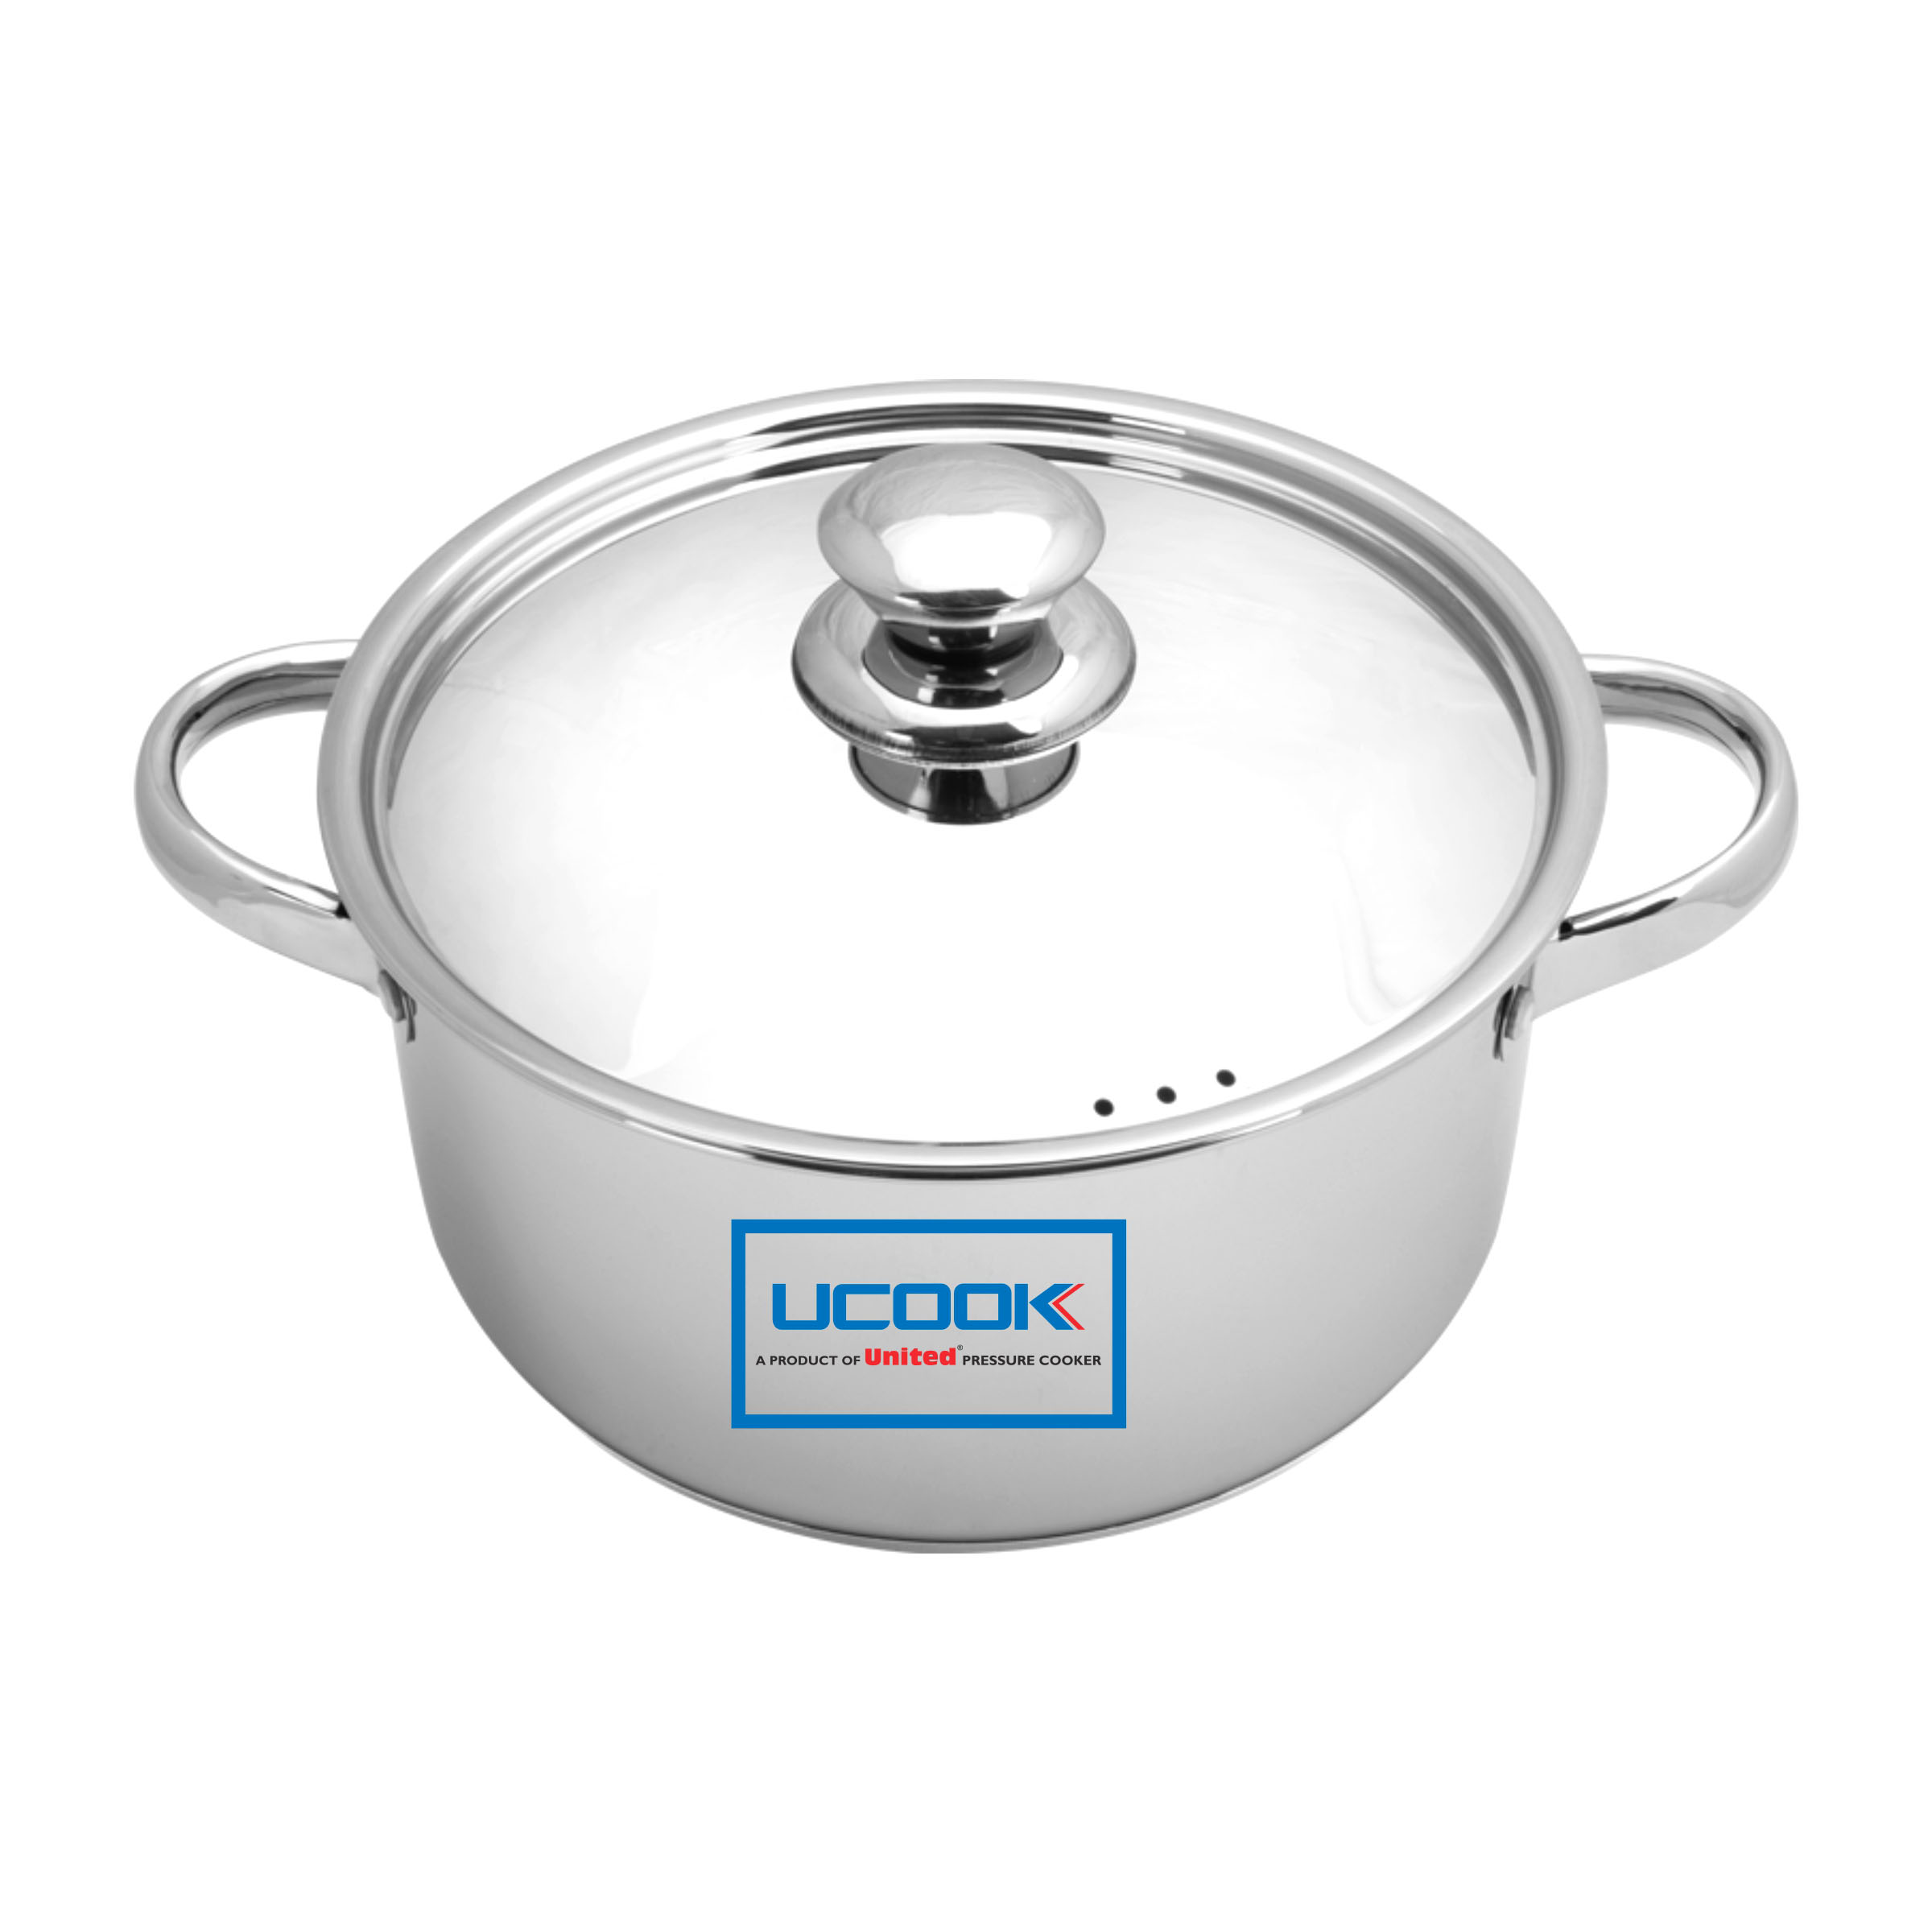 UCOOK LIFETIME CASSEROLE WITH LID 200 MM